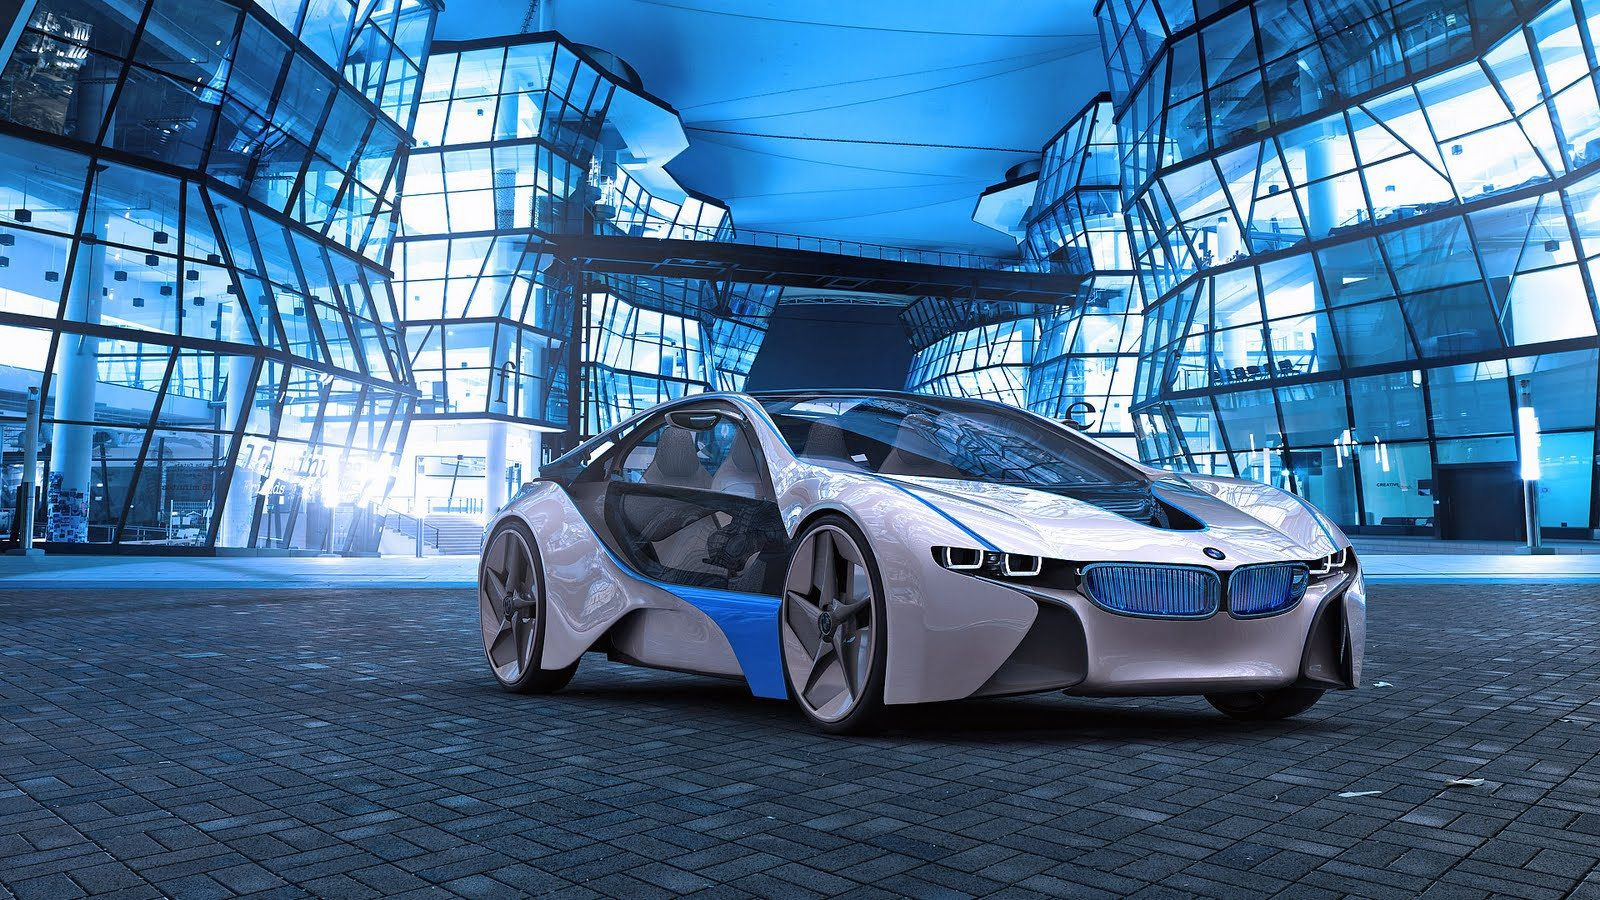 Best Hybrids For The Money 2015 Happy Holiday 2015 Supercars Wallpaper Sports Car Wallpaper Bmw